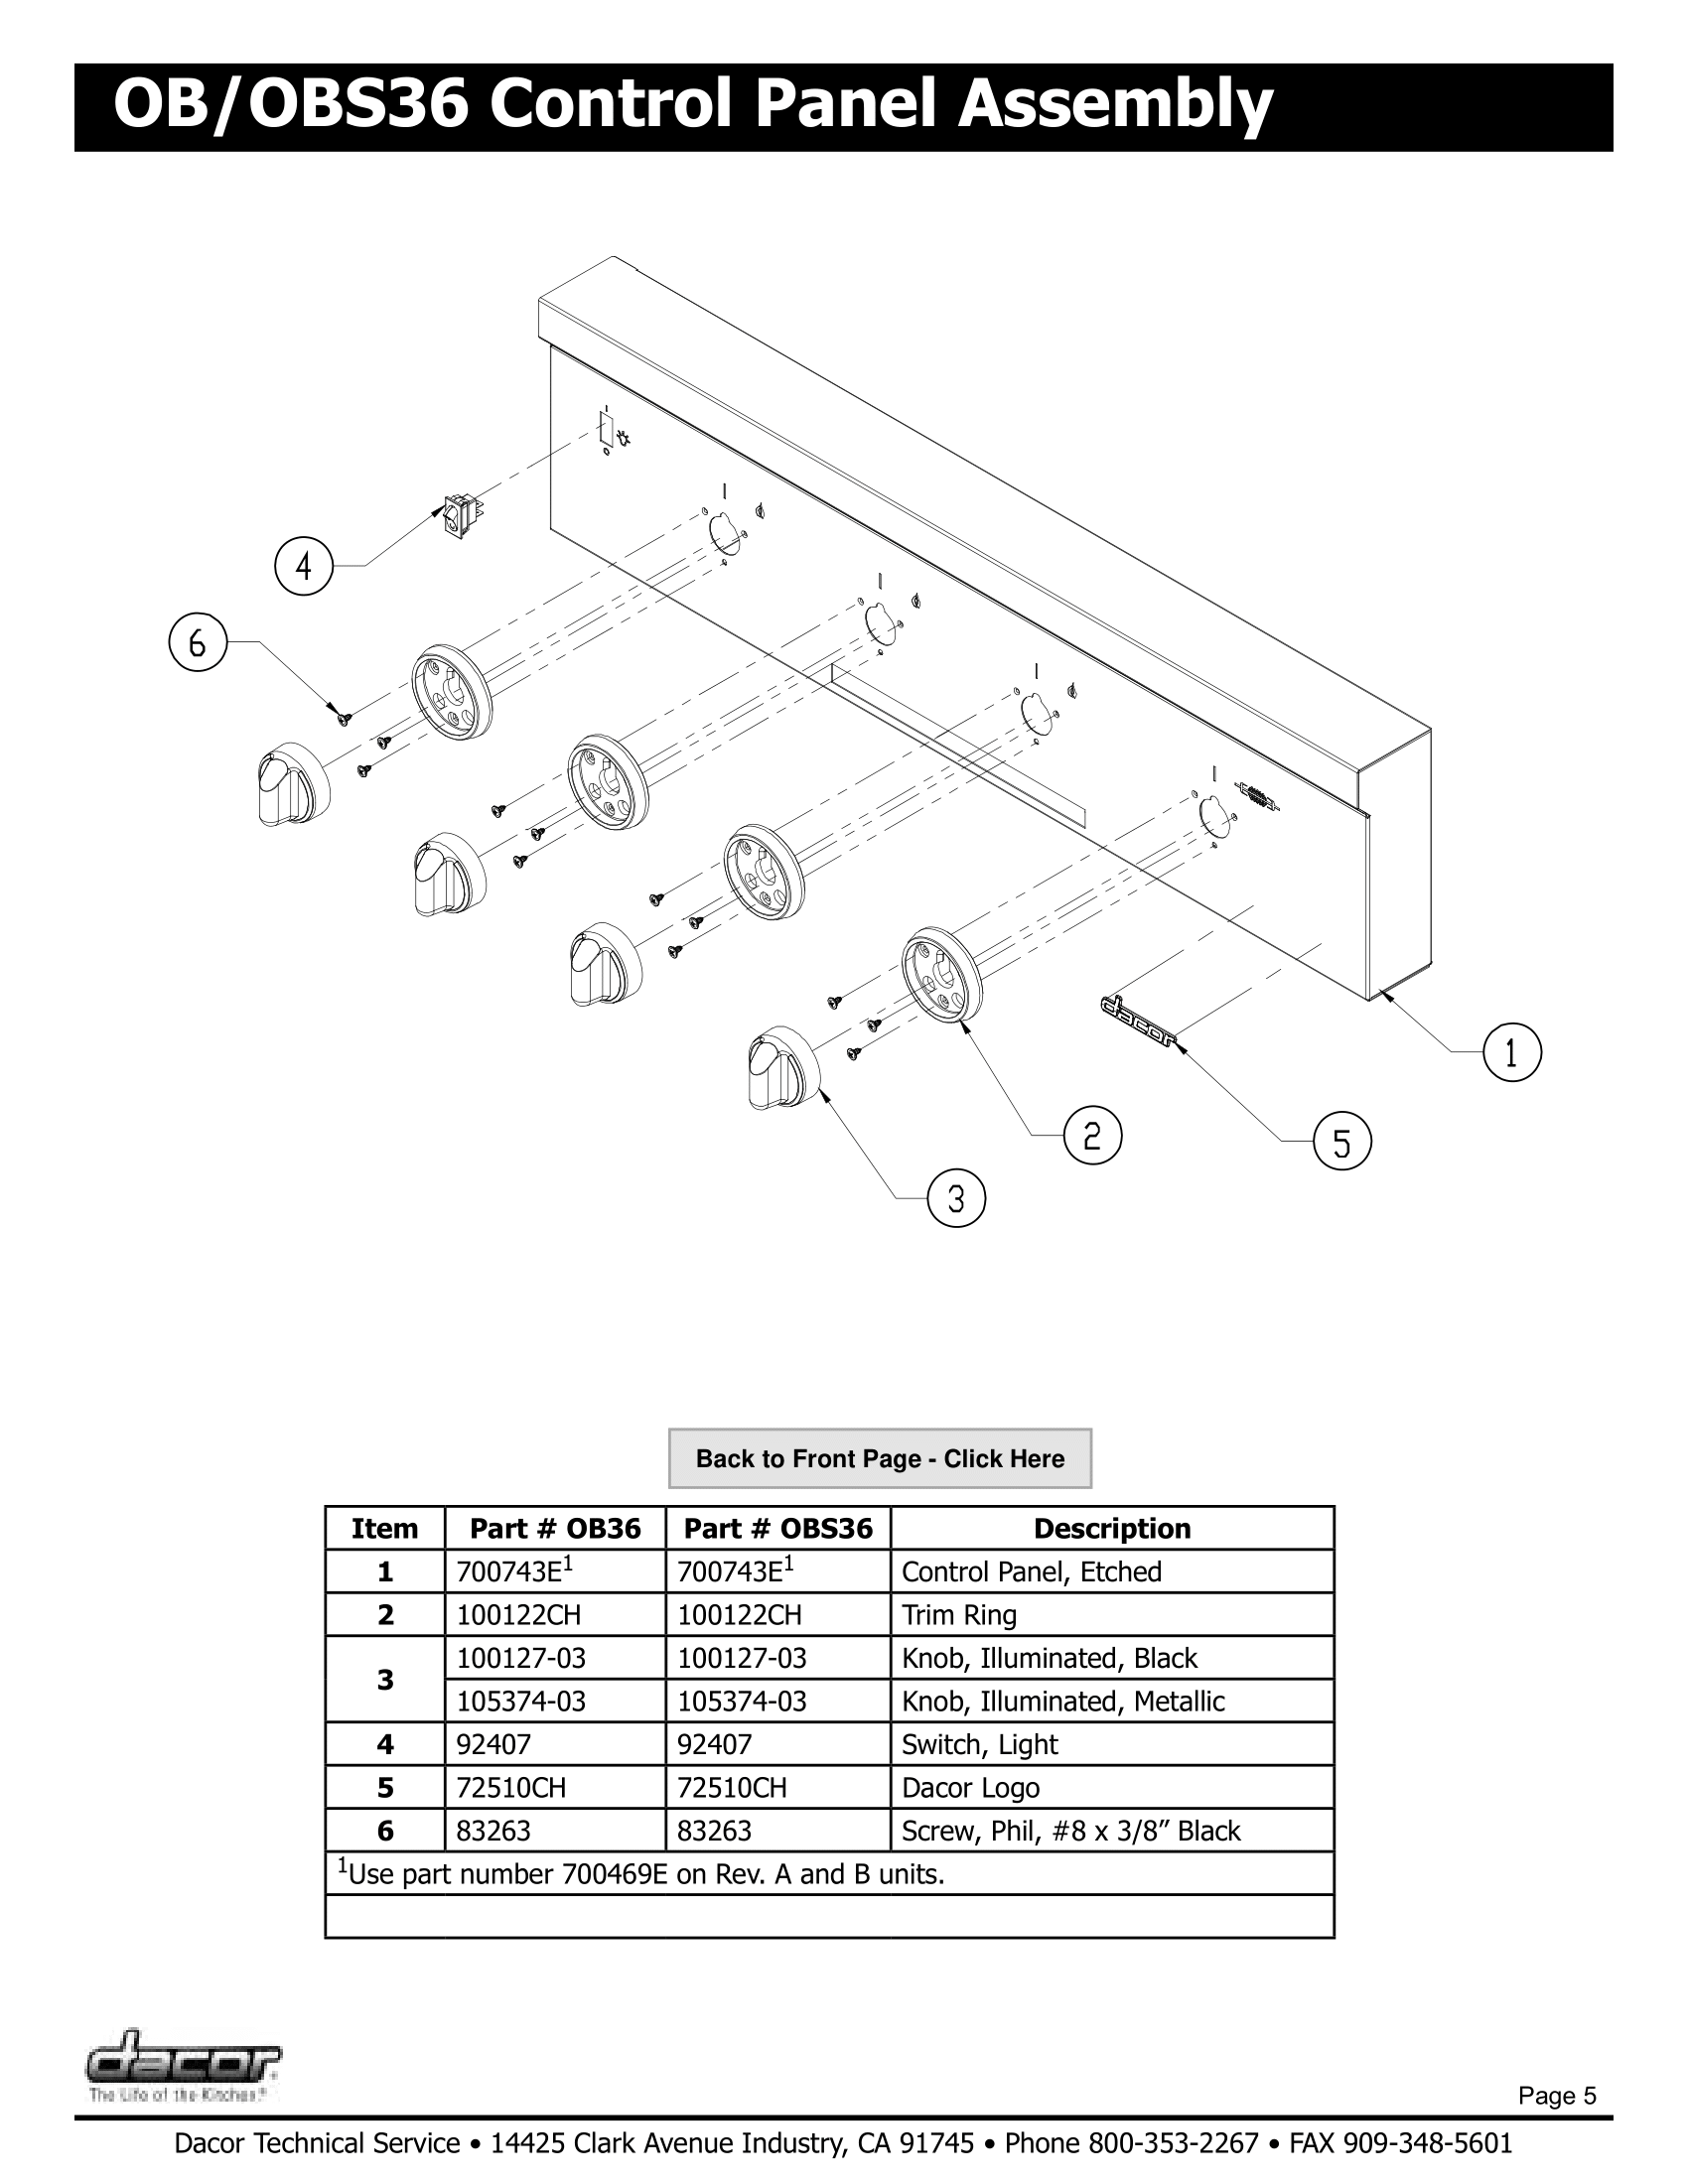 Dacor OB36 Control Panel Assembly Schematic